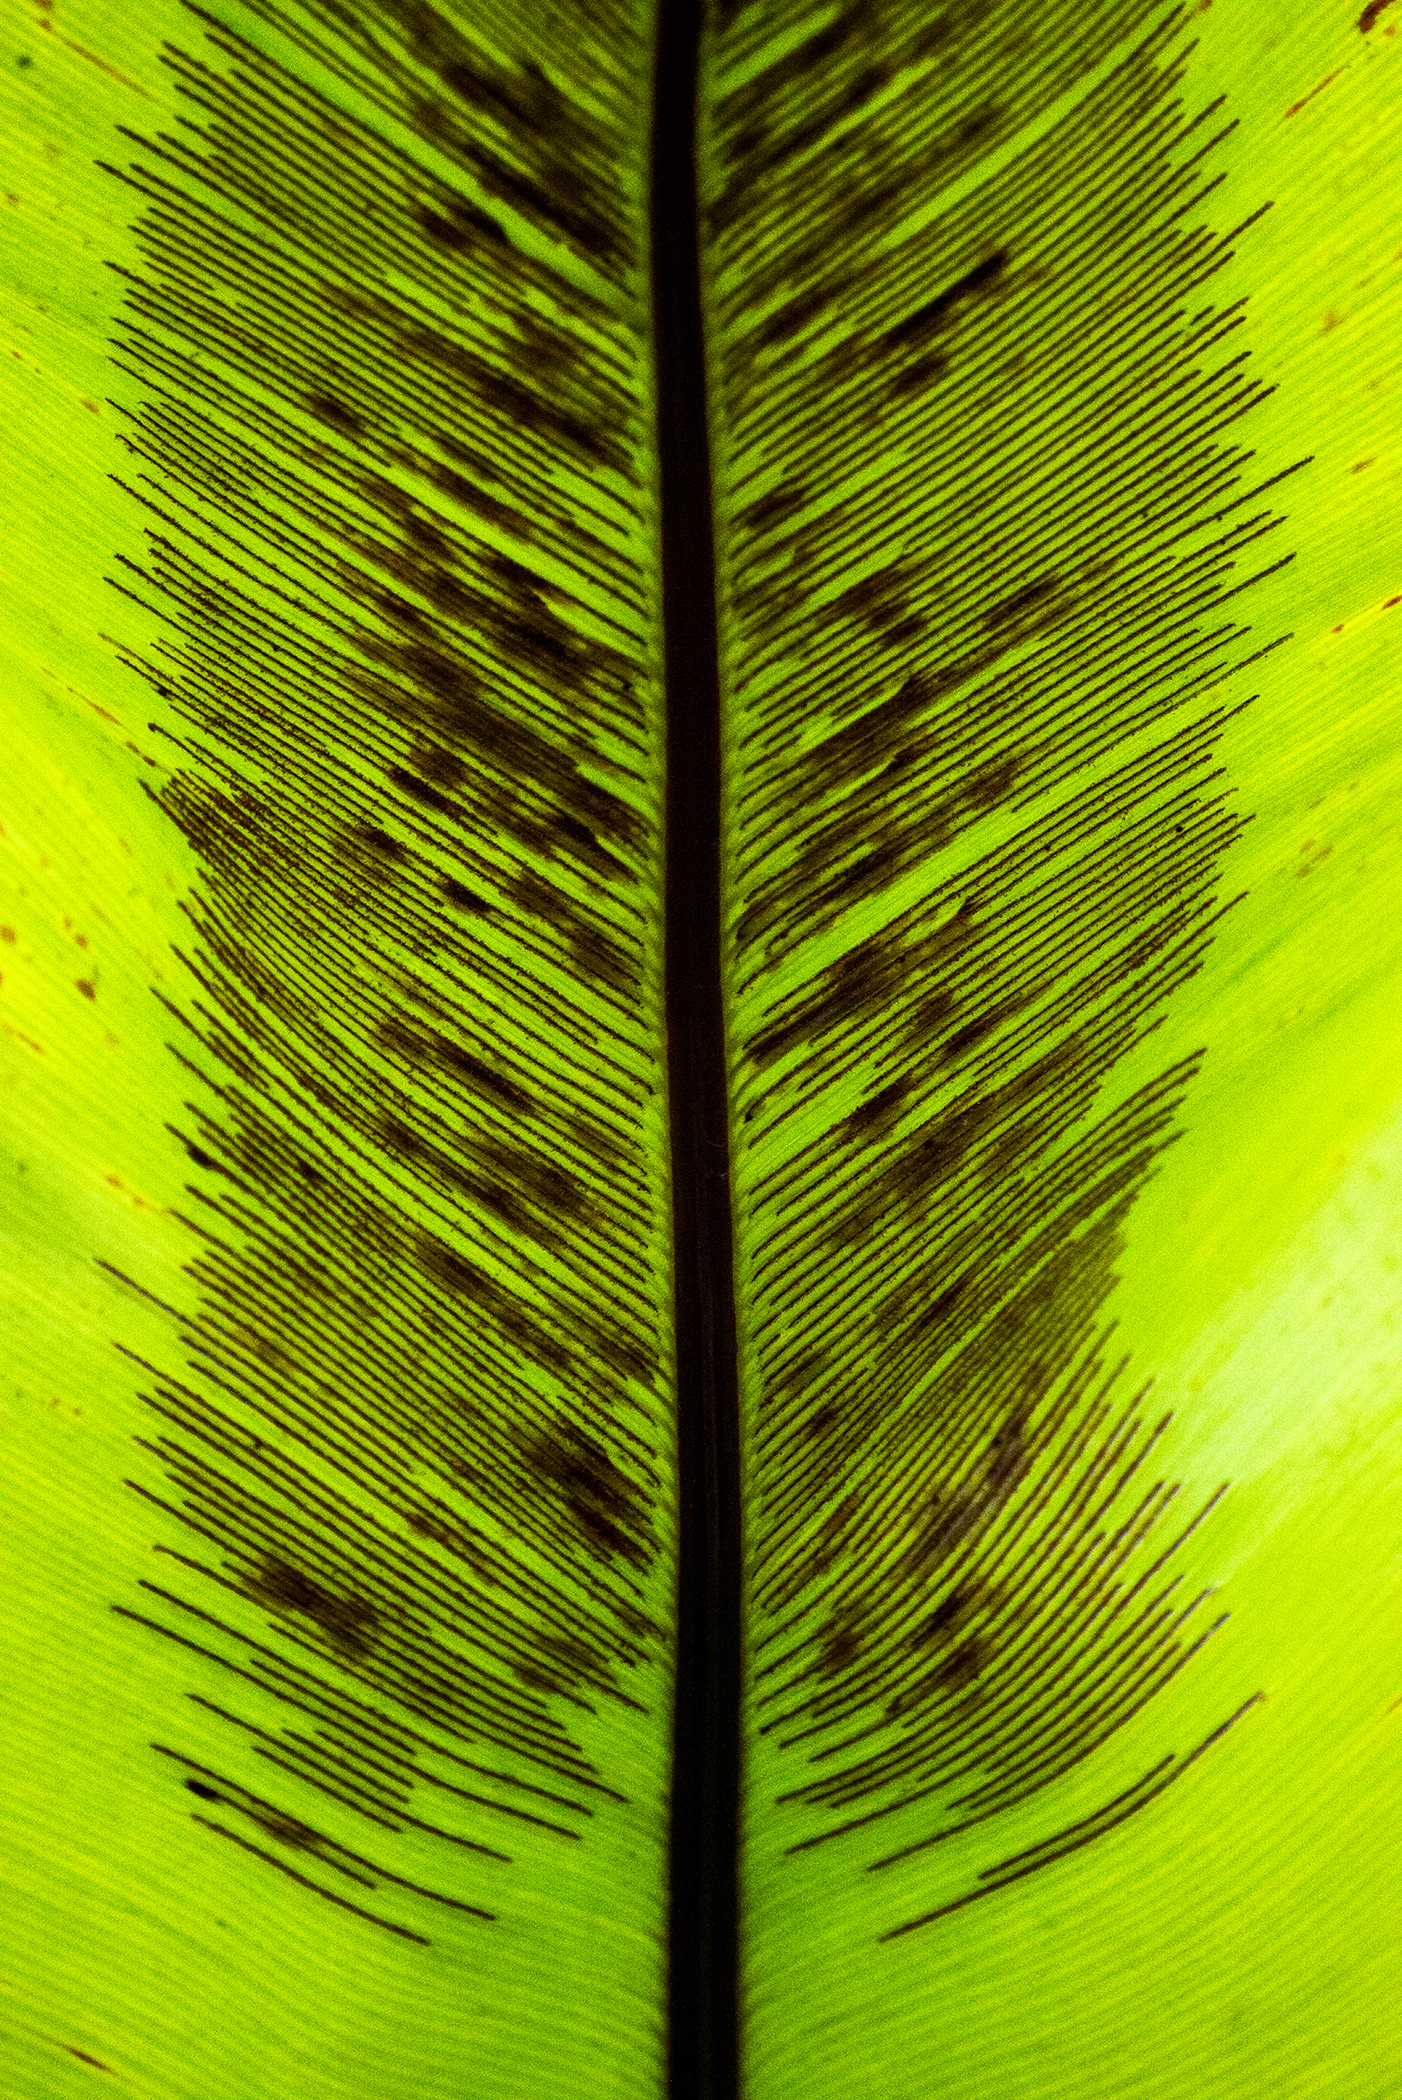 Abstract in Nature #53